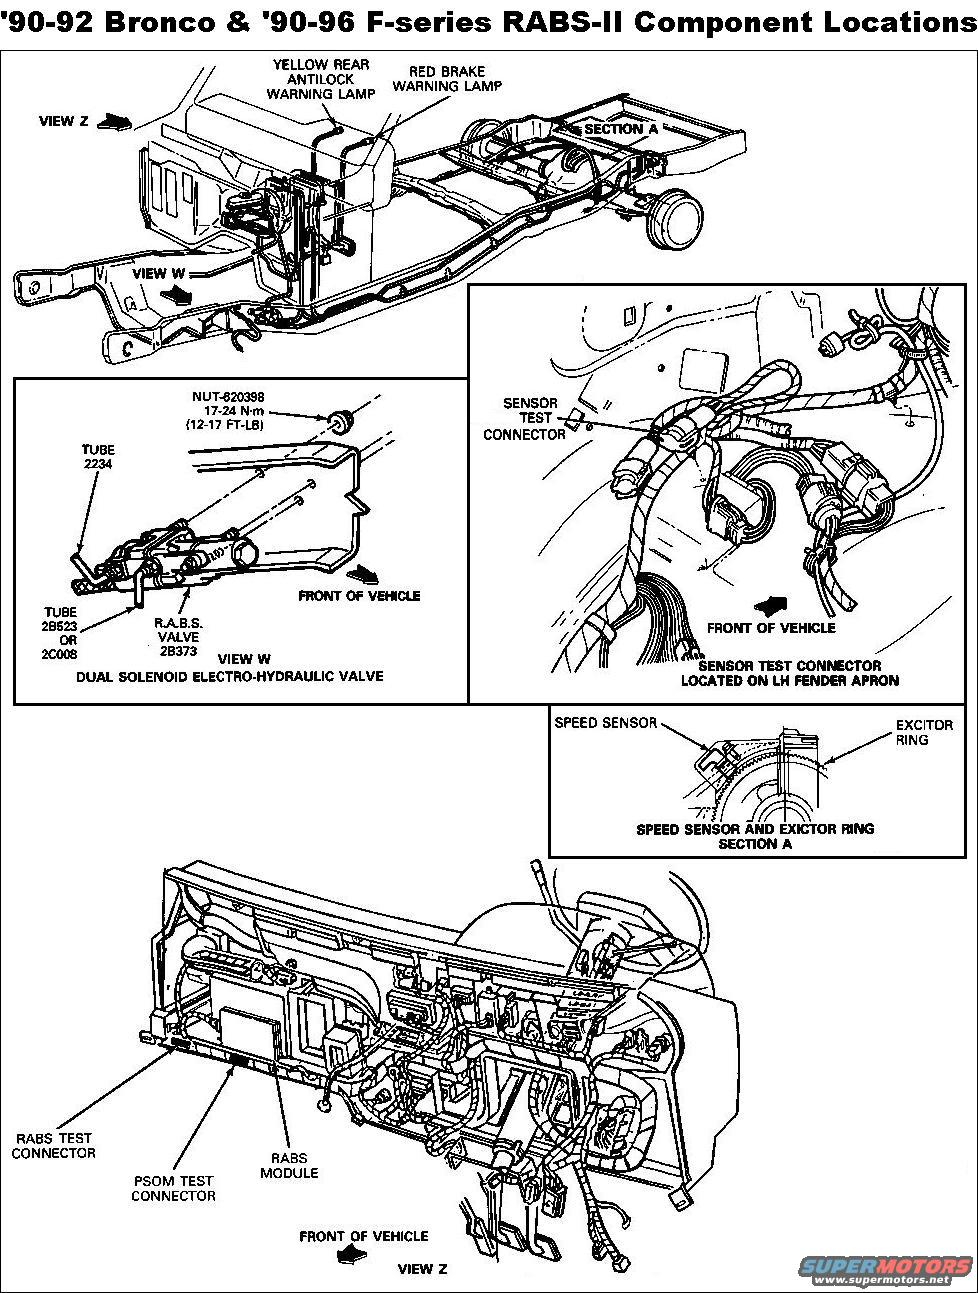 How To Retrieve Abs Trouble Codes Ford F150 Forum Community Of 1994 Lightning Wiring Diagram Rabs Troubleshooting Flow Chart Source By Steve83 Steve That Dirty Old Truck At Supermotorsnet